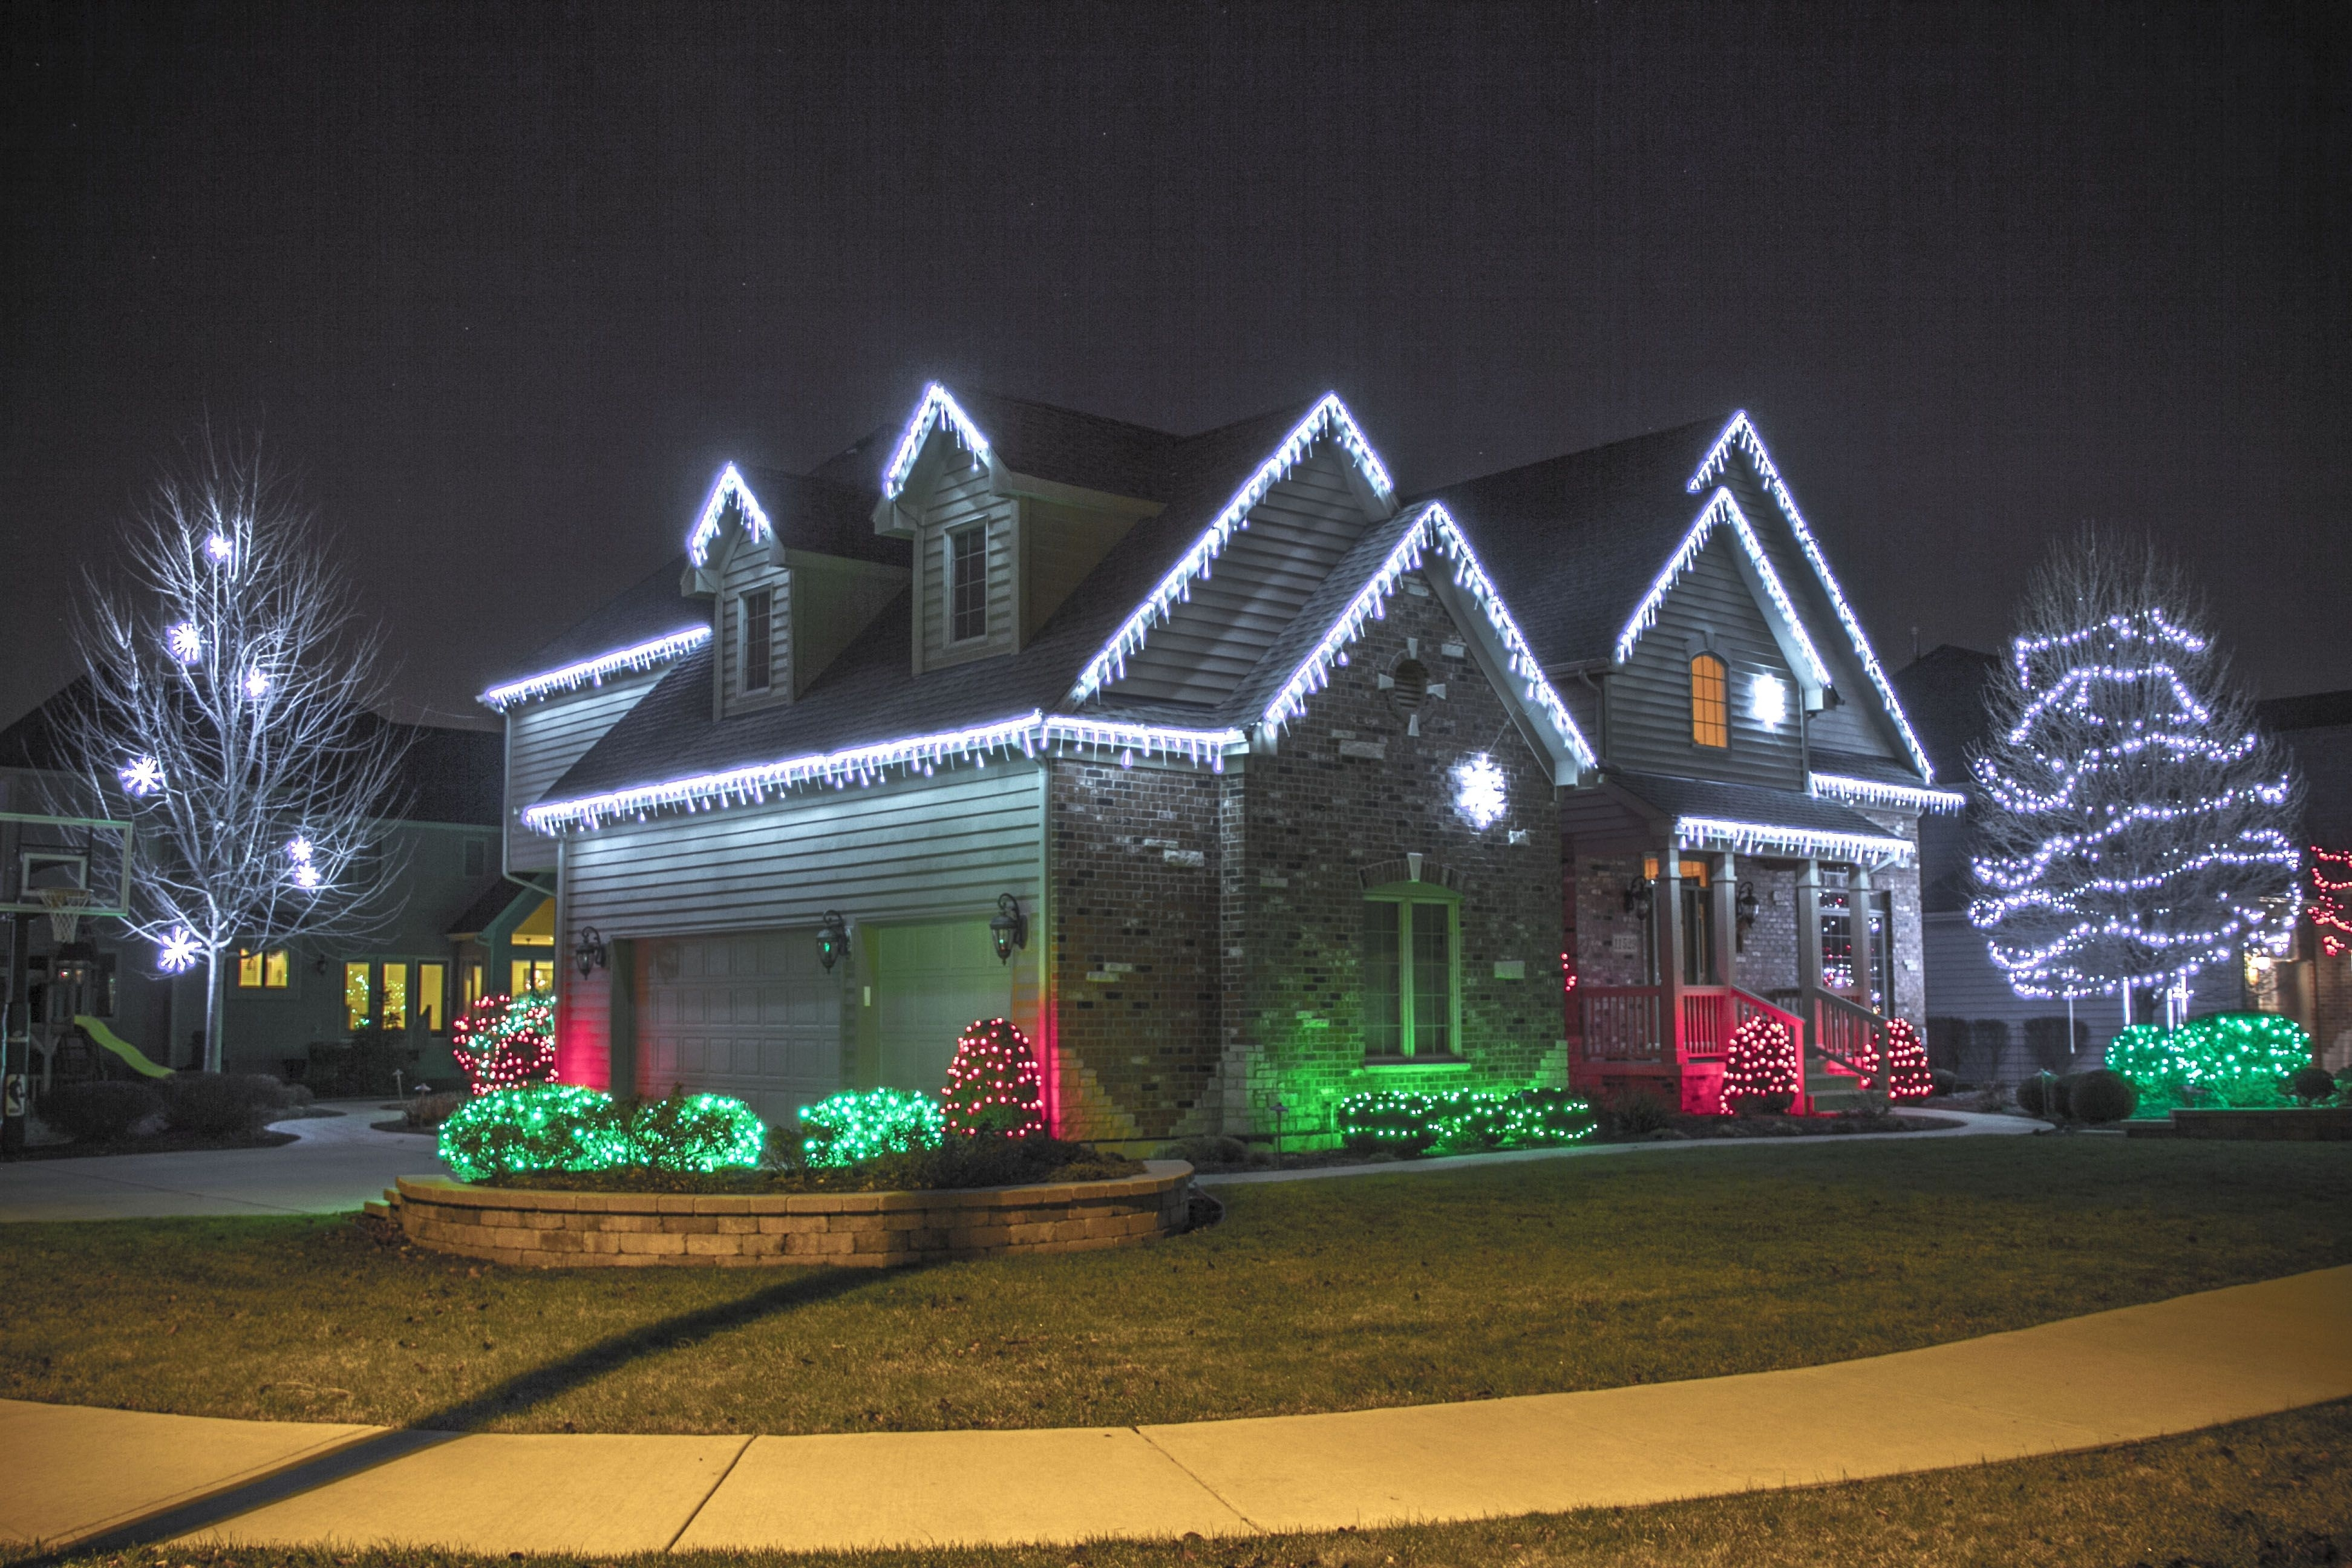 Christmas Outdoor Hanging Lights On Trees – Google Search Intended For Outdoor Hanging Lights For Christmas (View 2 of 15)